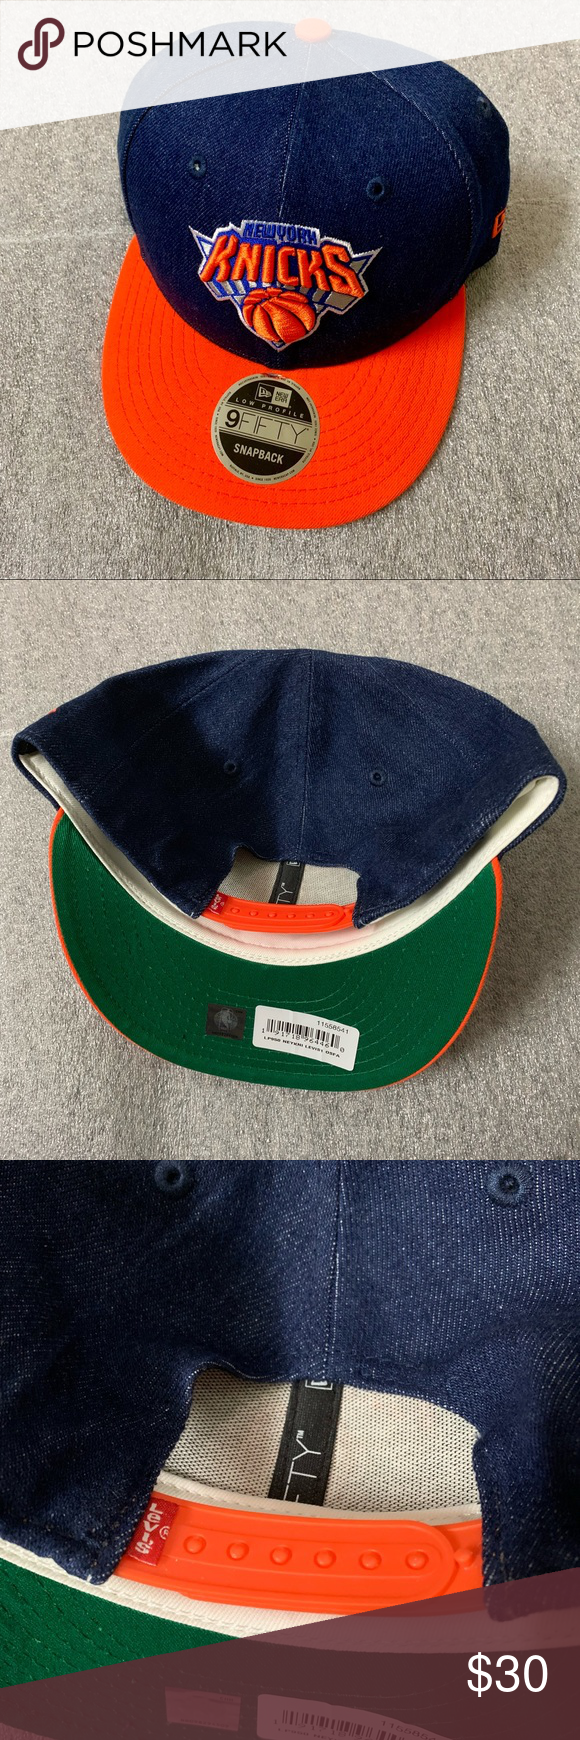 92326e8a210 New Levi s New Era NY Knicks Denim SnapBack Hat OS Brand New Levi s New Era  New